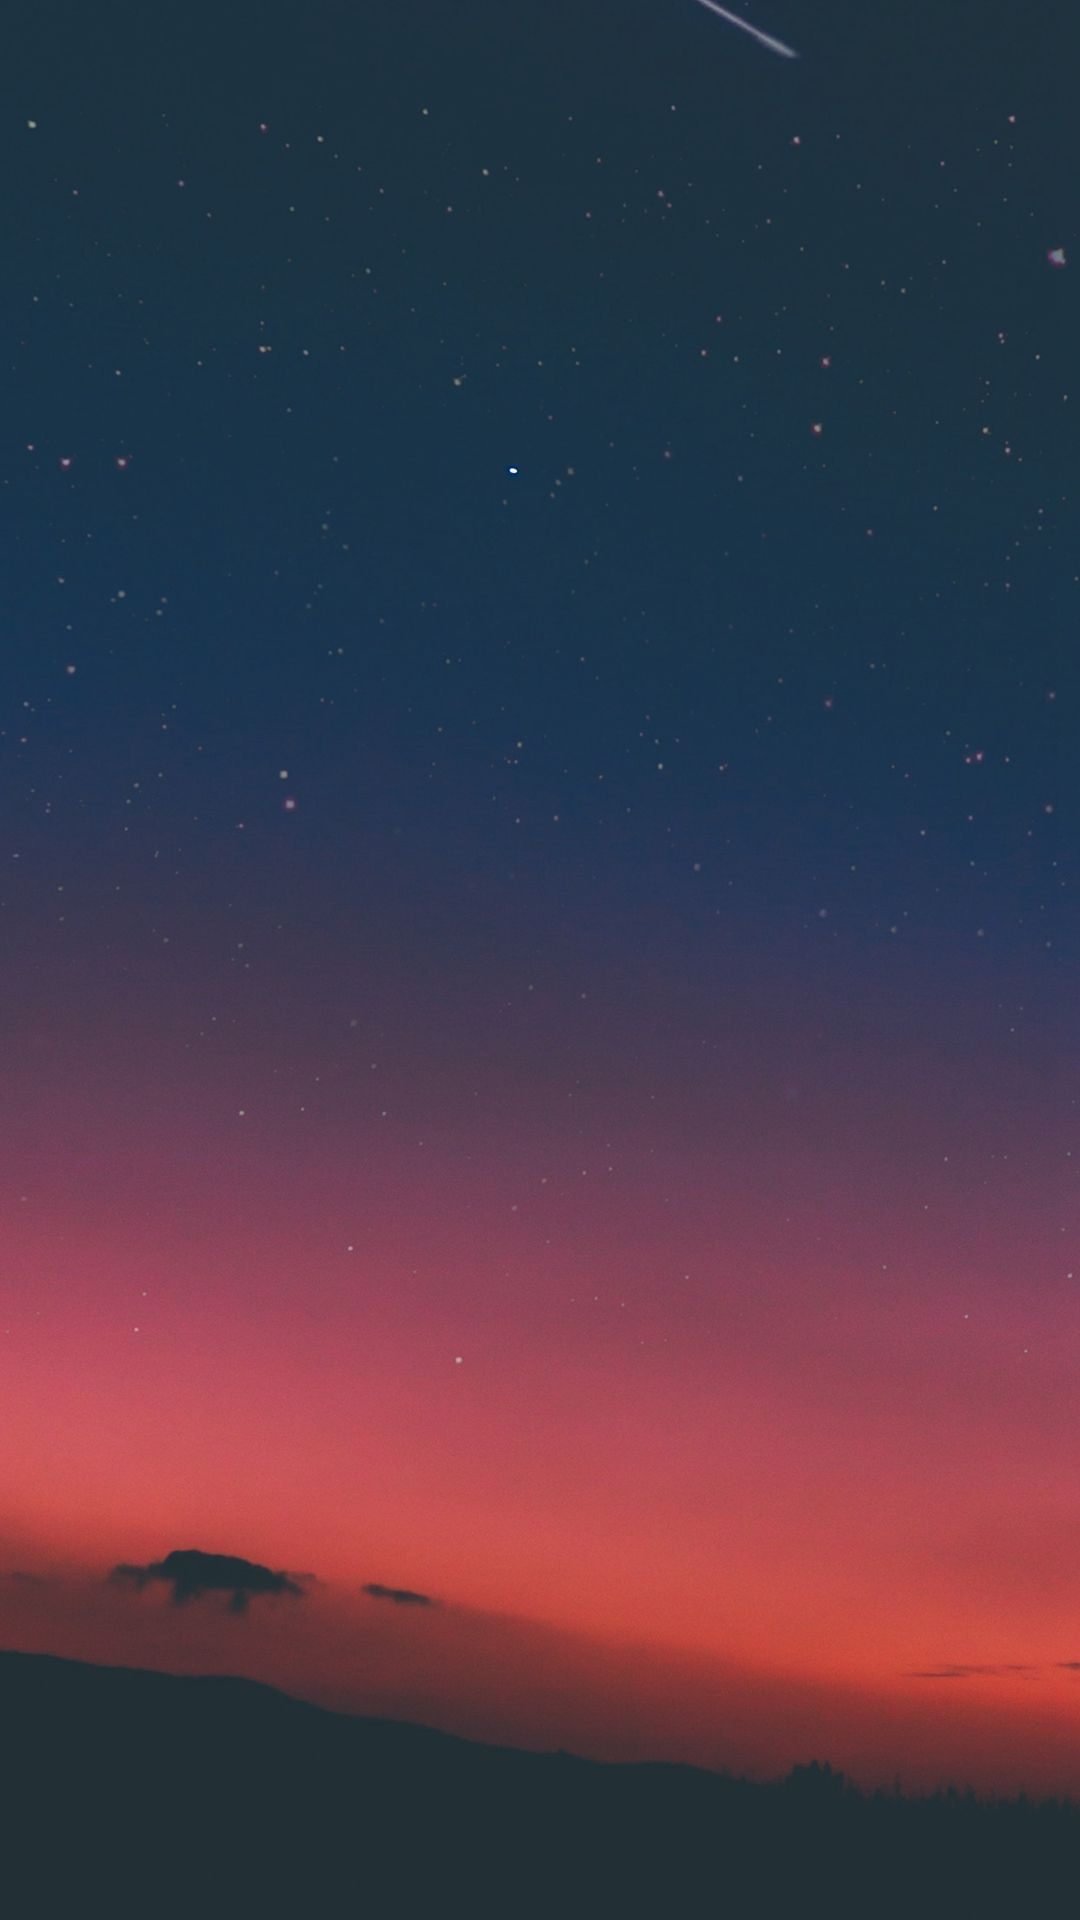 744x1392 Image for iOS ...